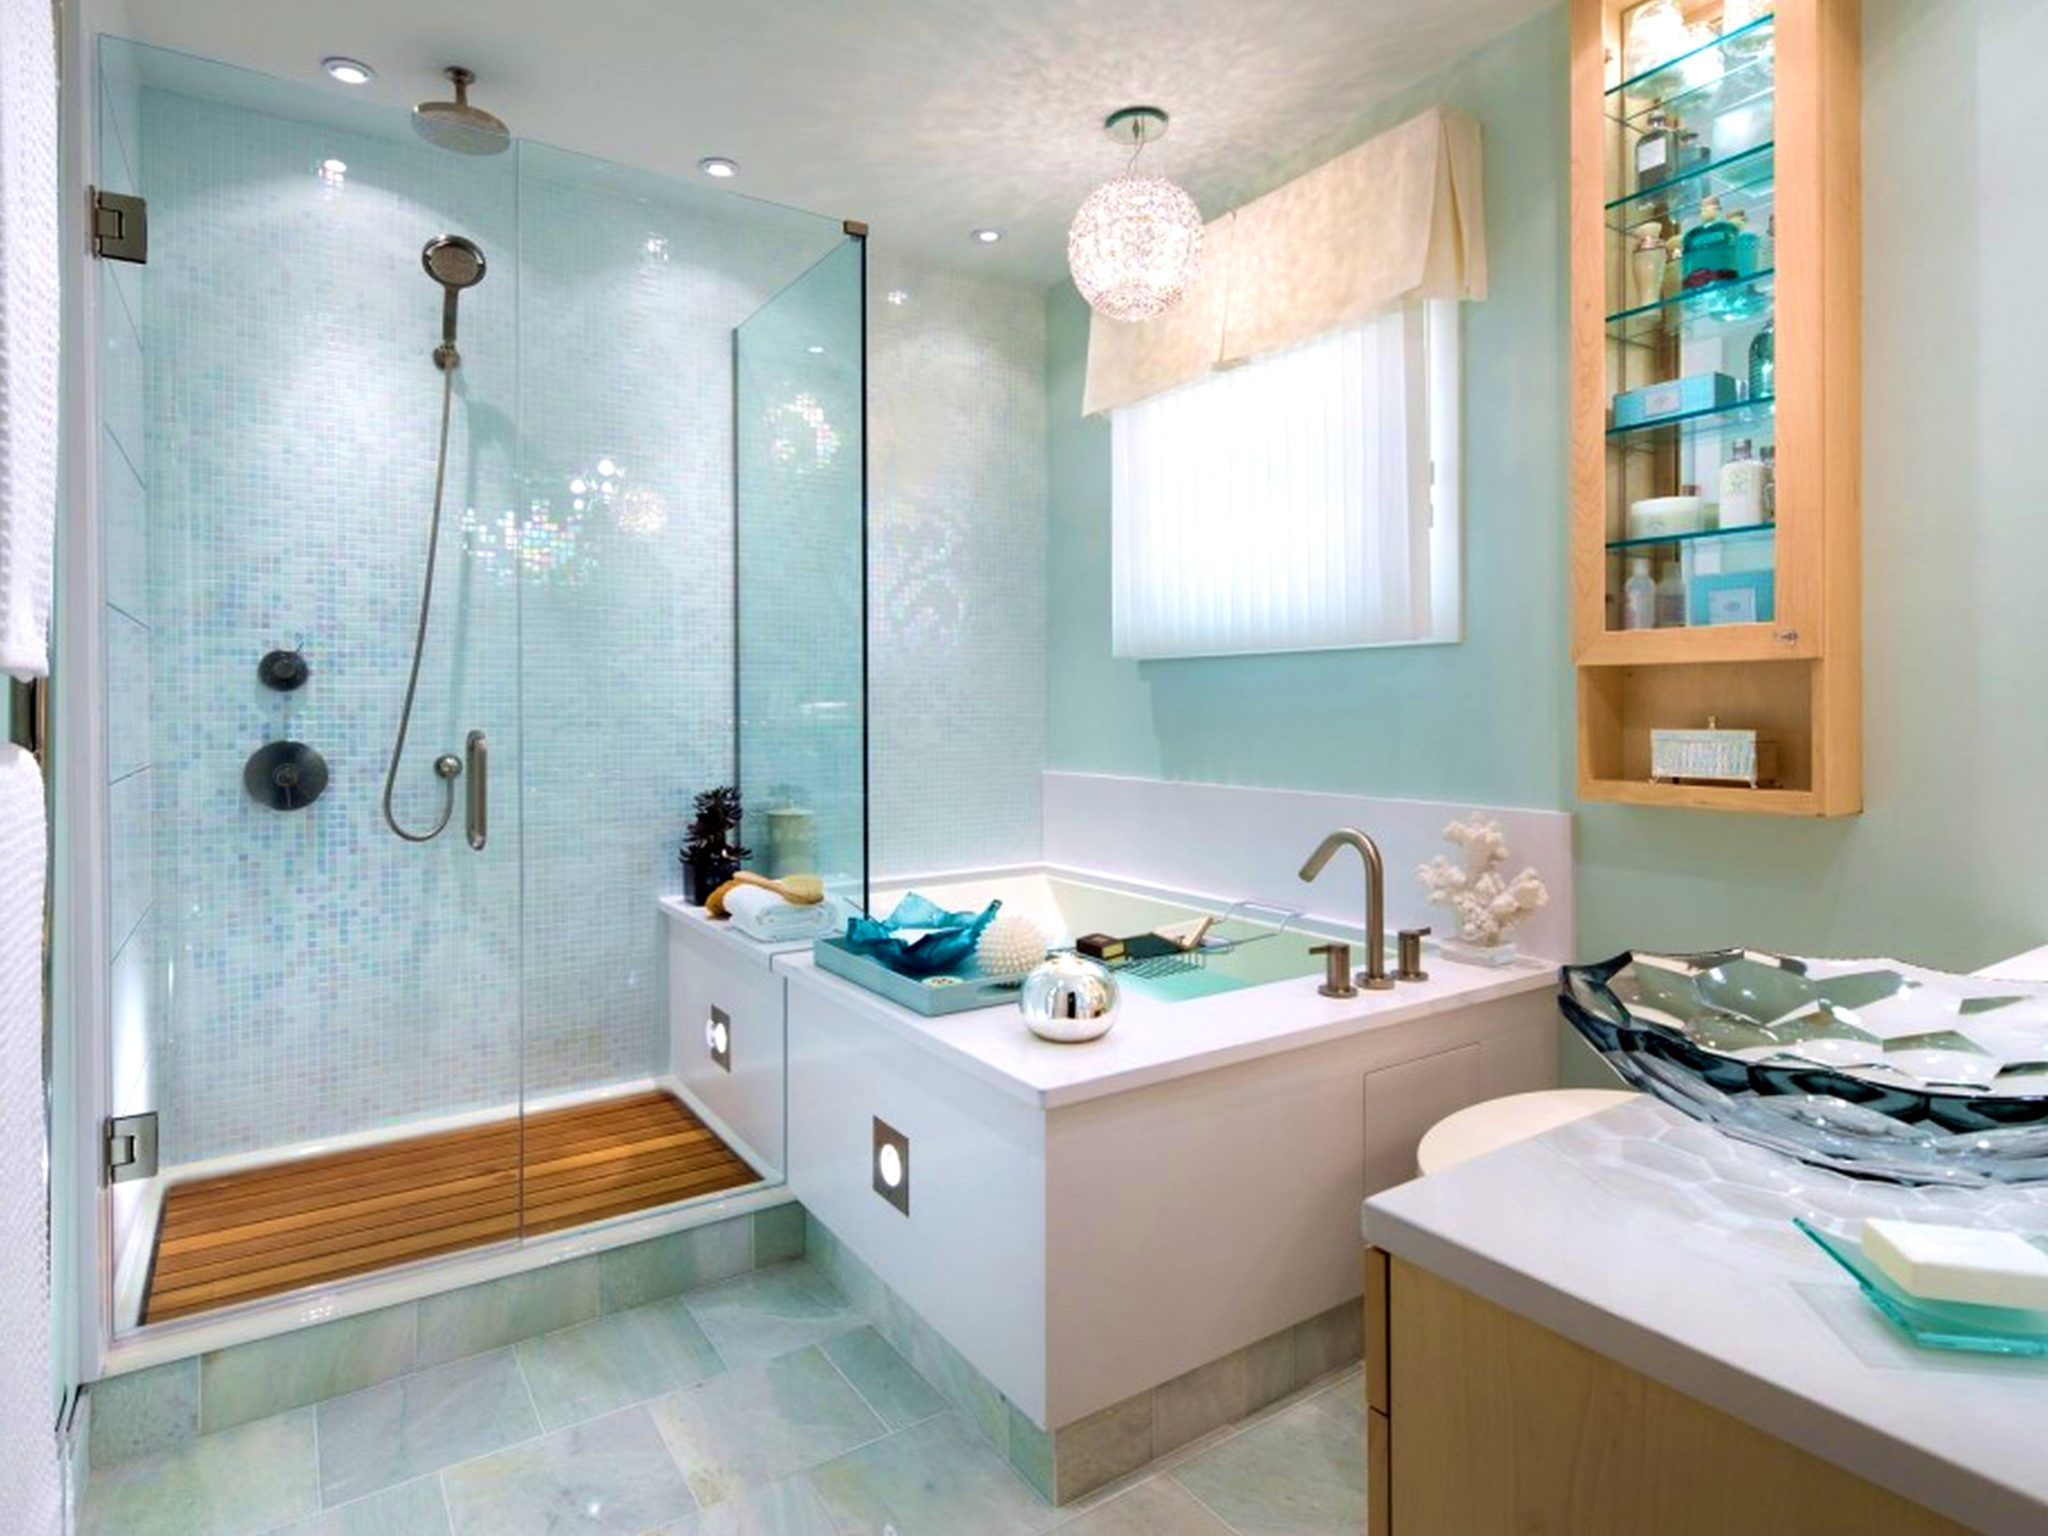 Turquoise bathroom with a peaceful atmosphere